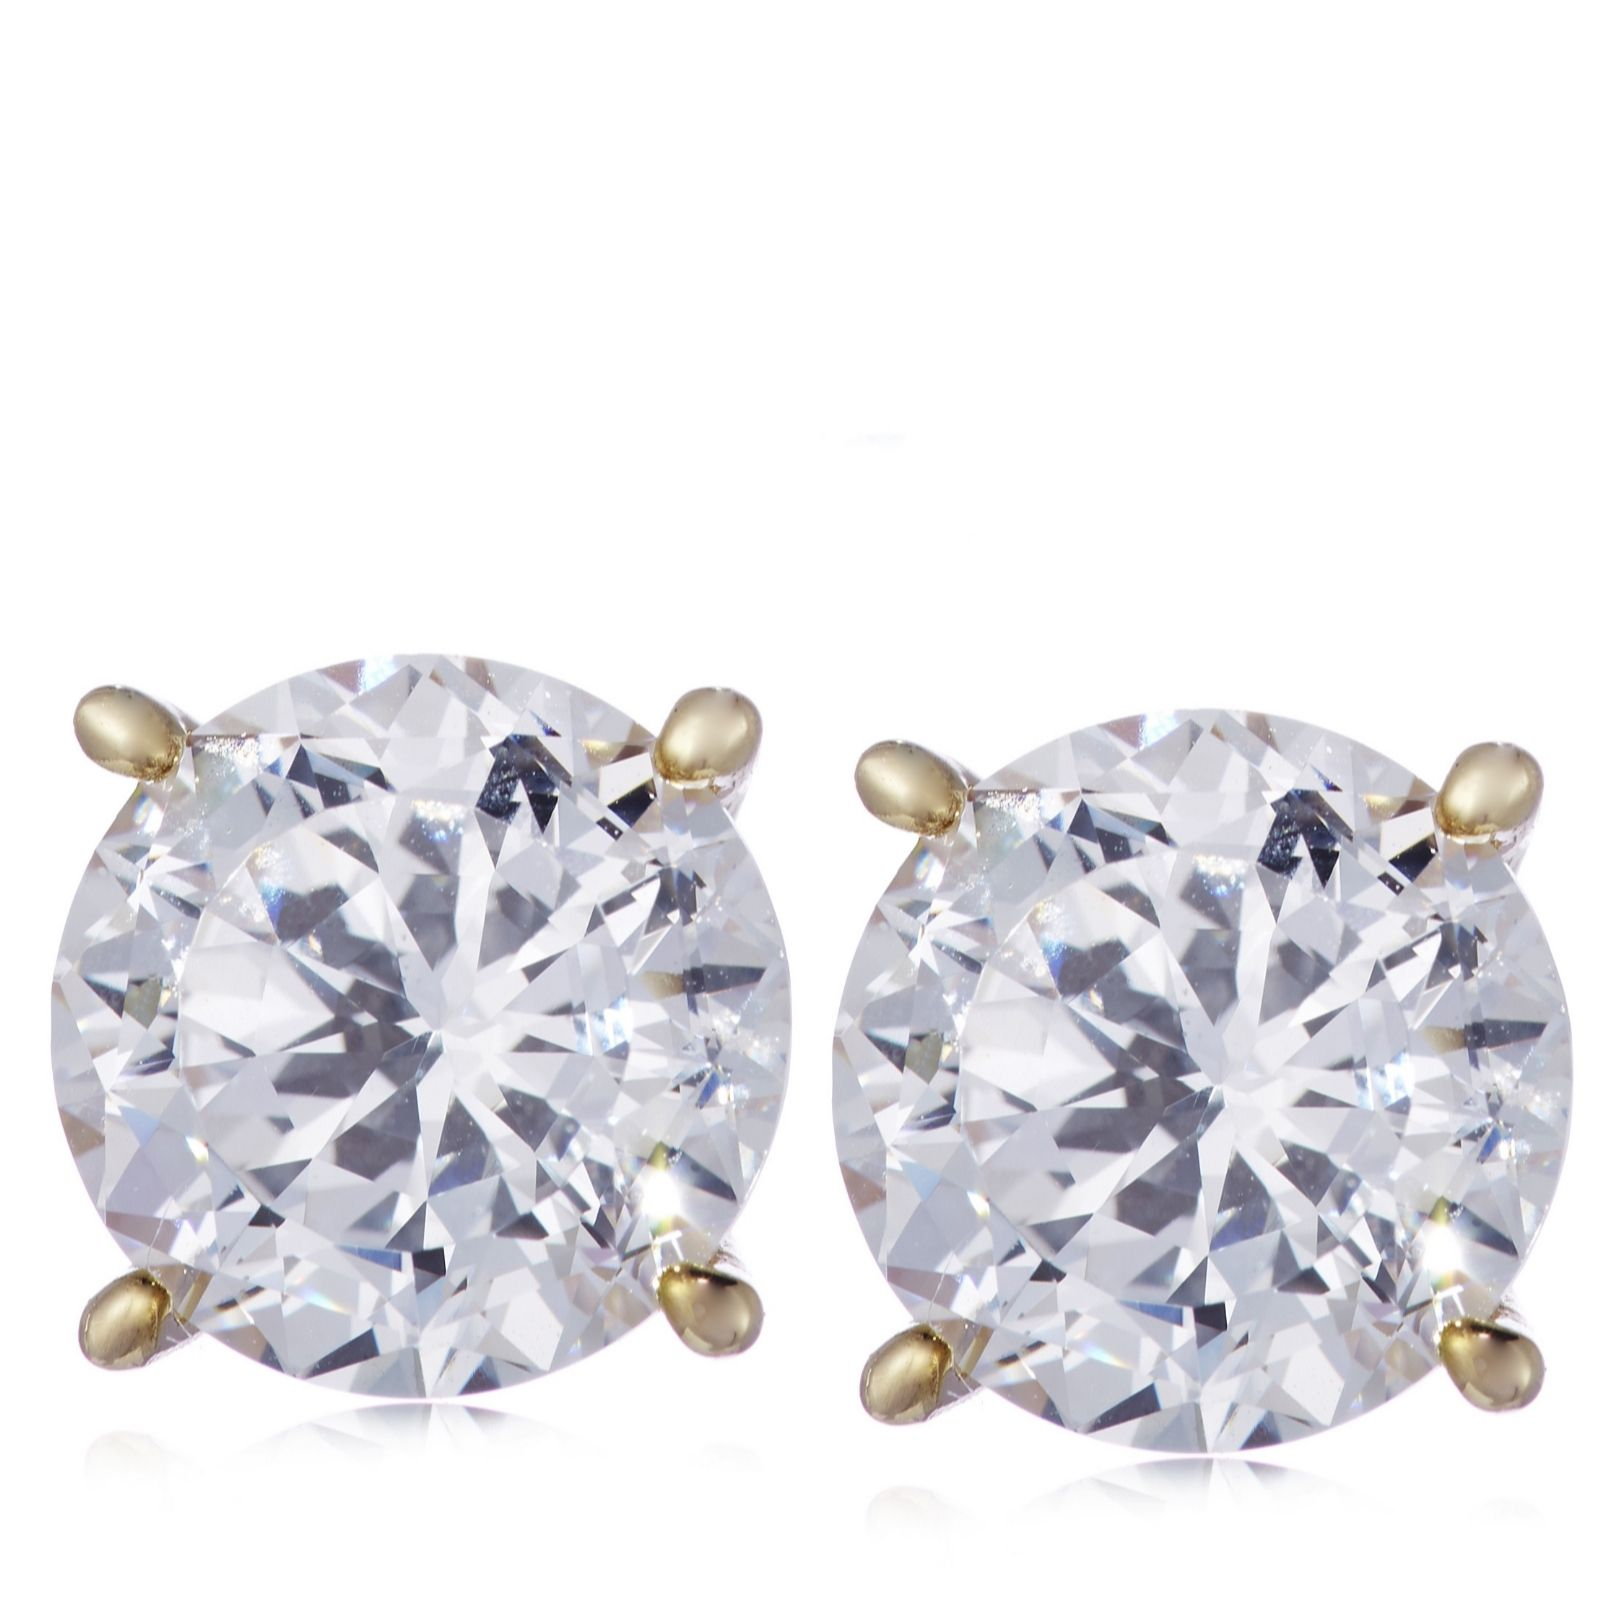 f6394ce50 Diamonique 6ct tw 100 Facet Stud Earrings Sterling Silver - QVC UK